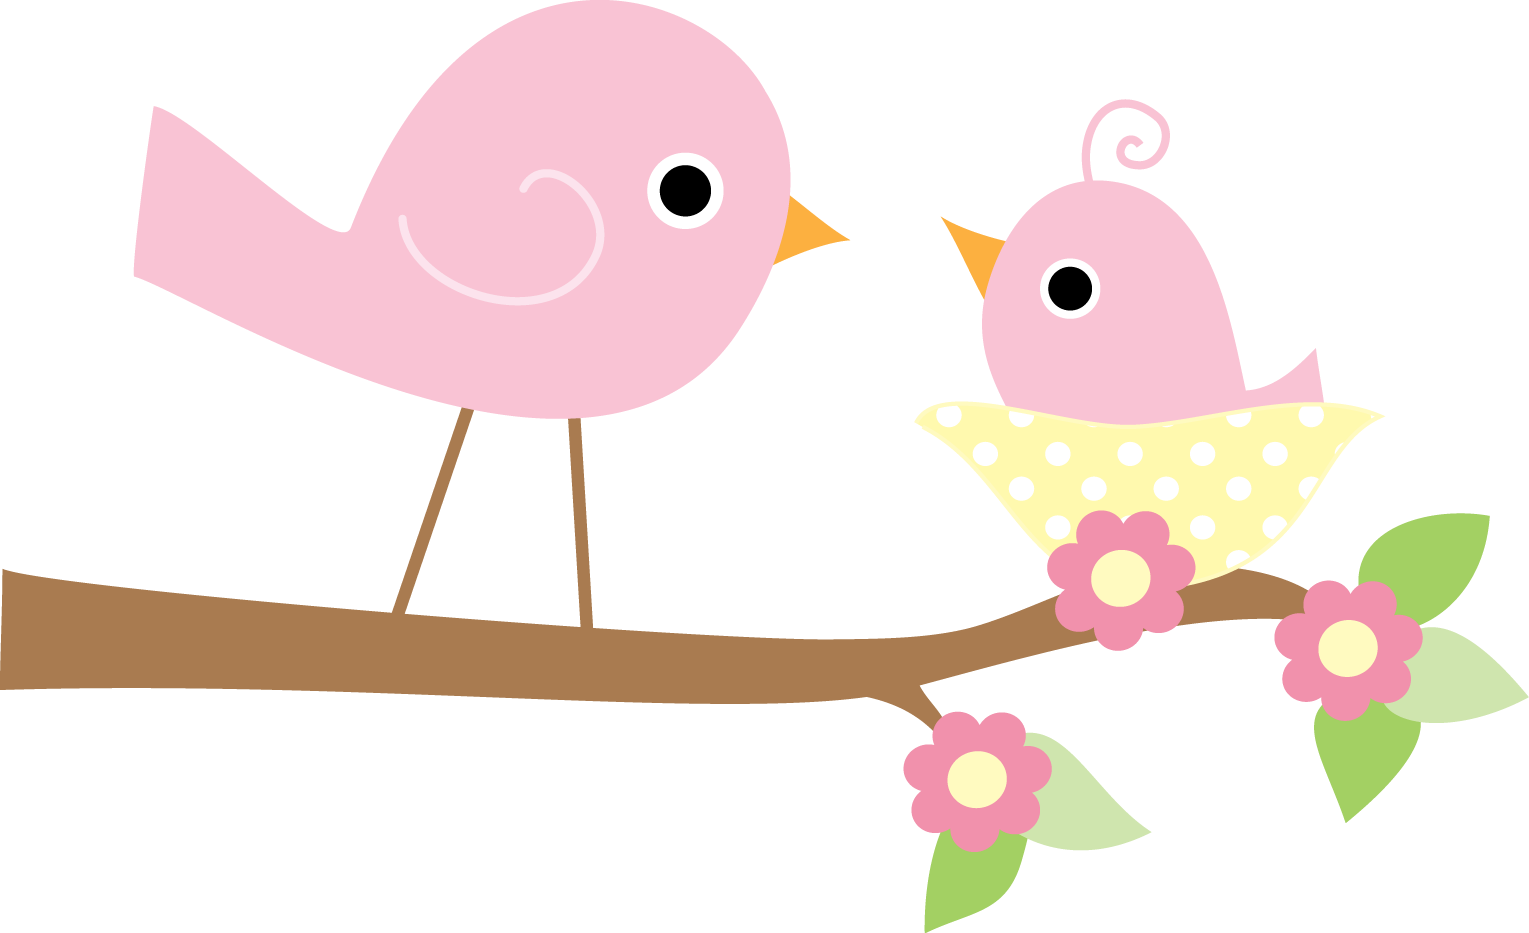 Flag clipart baby shower. Cute bird png transparent